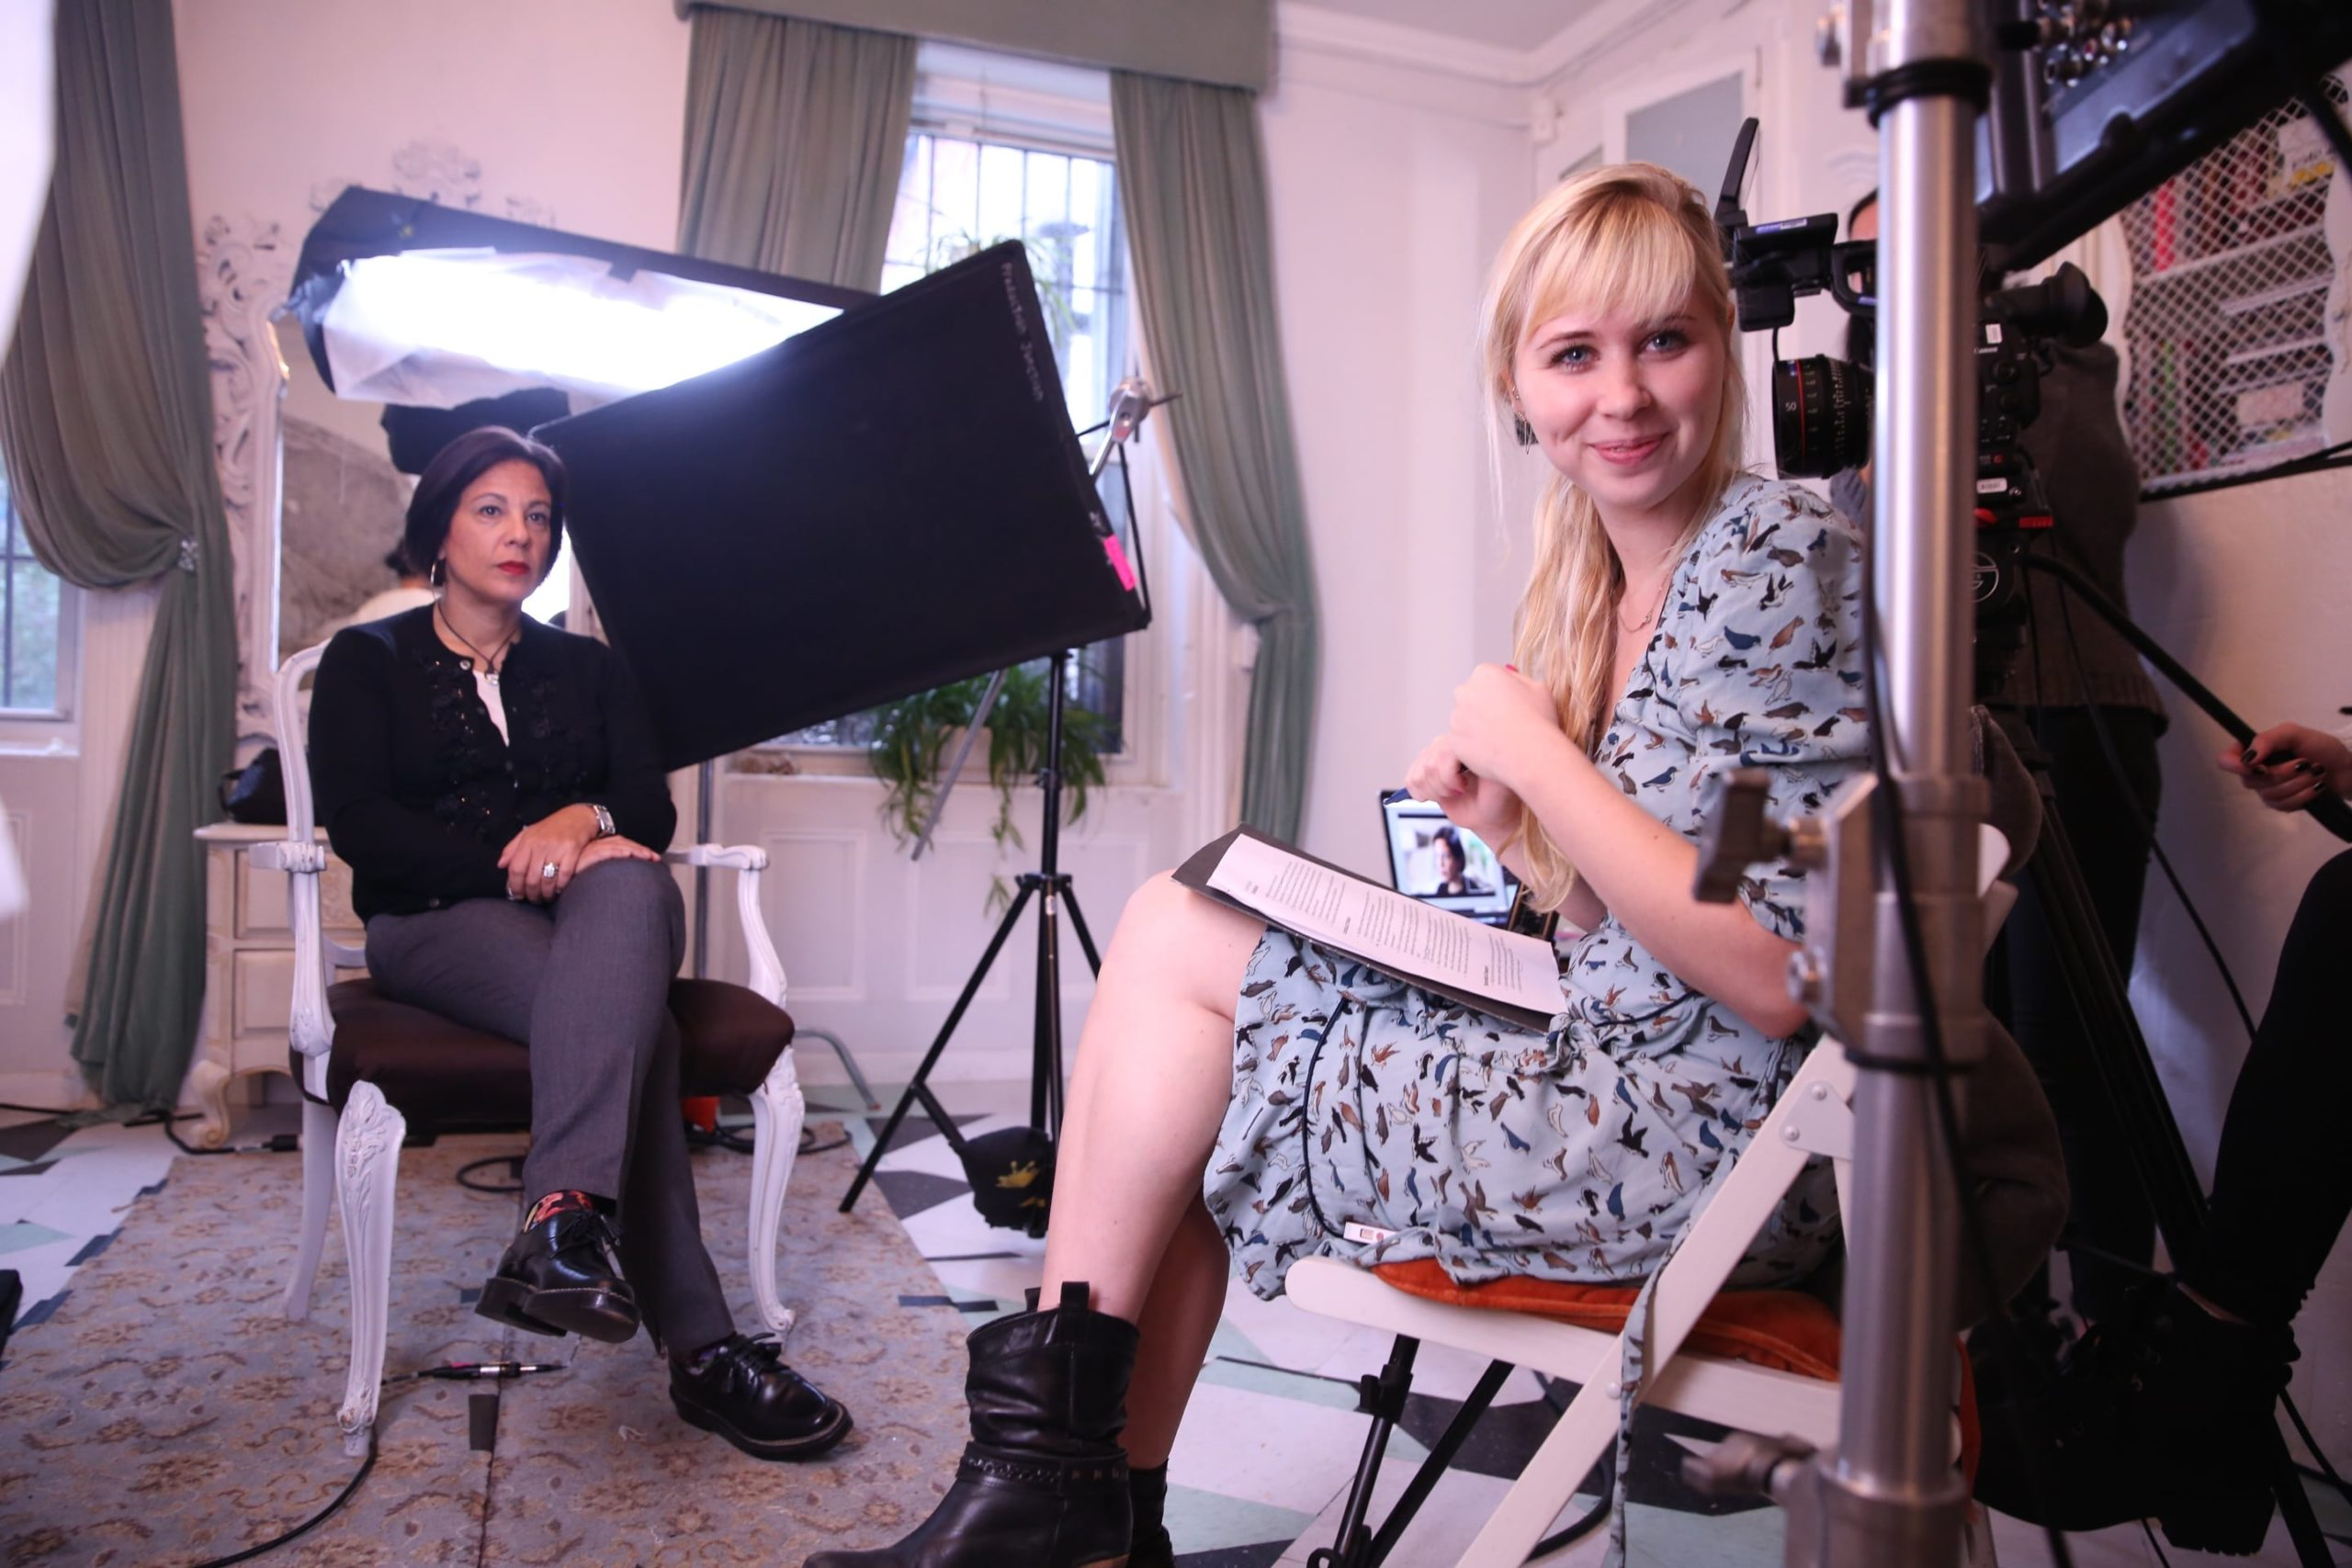 Erin Bagwell - watching screen - film production on female entrepreneurs and feminism - 2